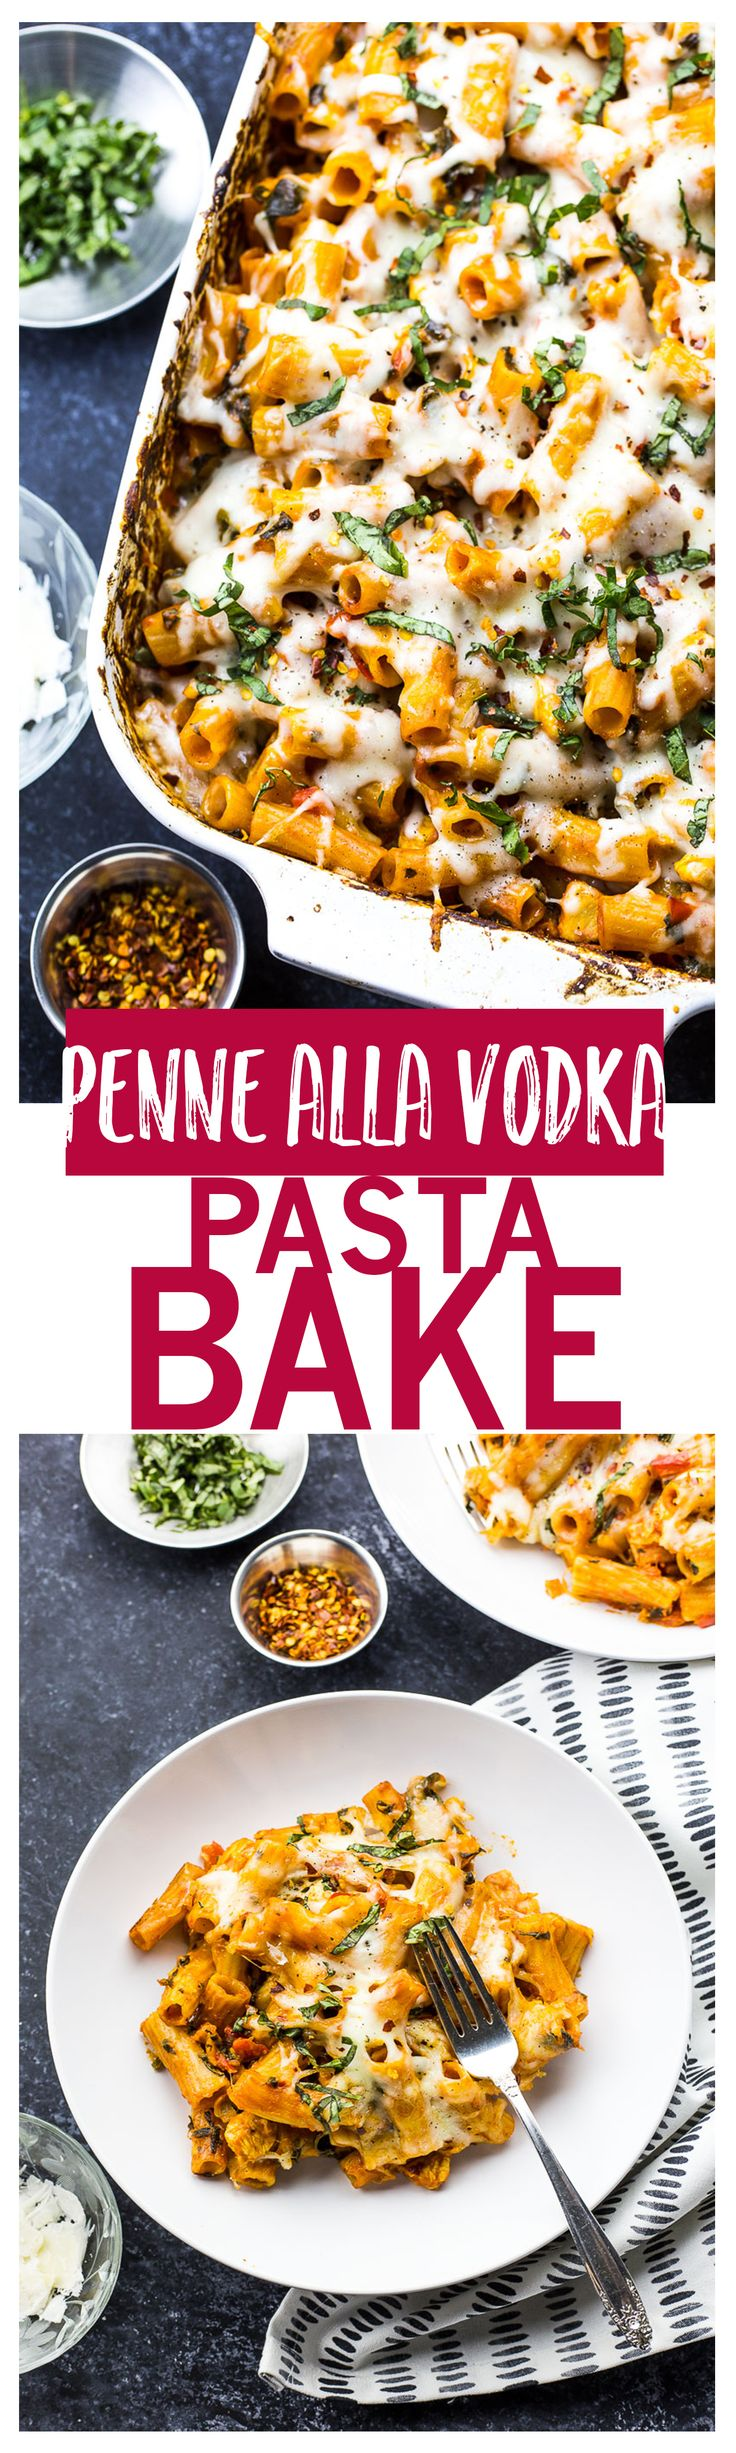 Penne alla Vodka Pasta Bake | Creamy, velvety vodka sauce, layers of spinach, red pepper and chicken